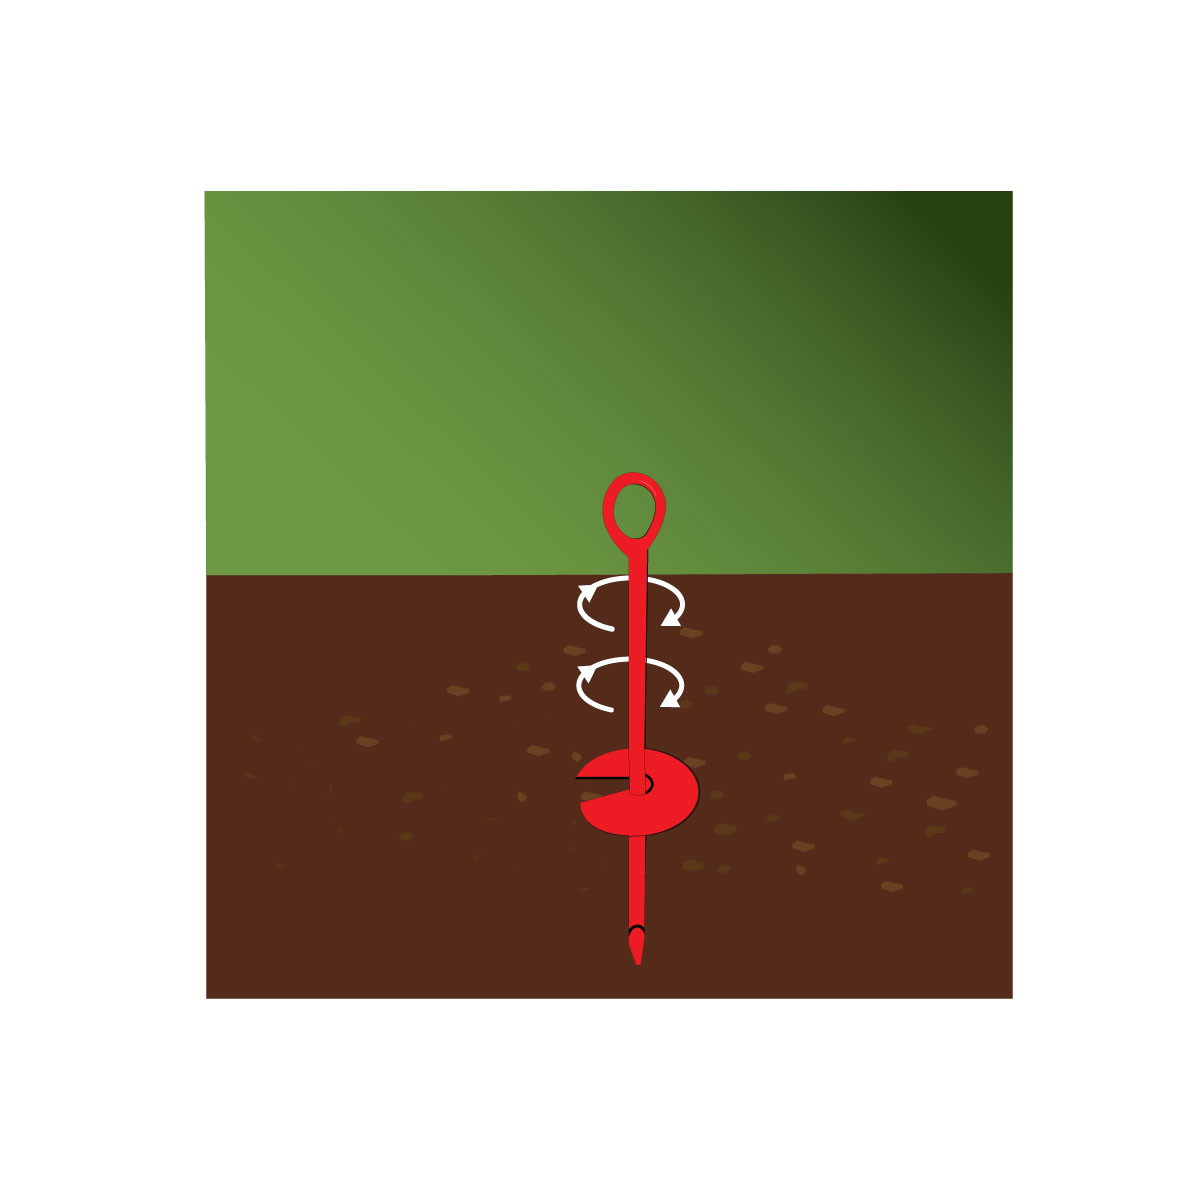 14218 hold downn auger ground anchor illustration